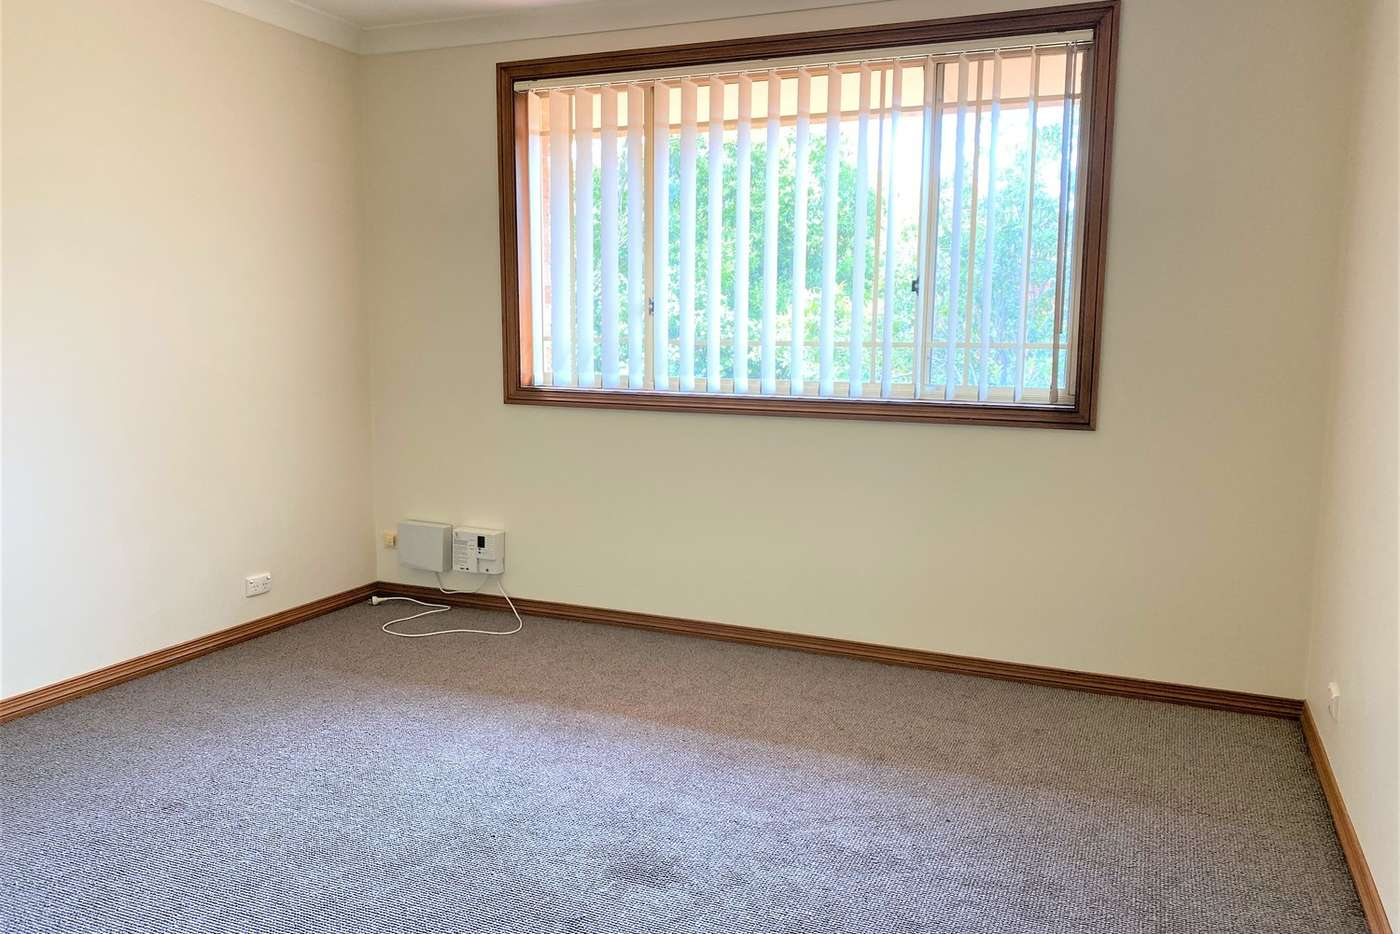 Sixth view of Homely townhouse listing, 1/60 McGowen Crescent, Liverpool NSW 2170